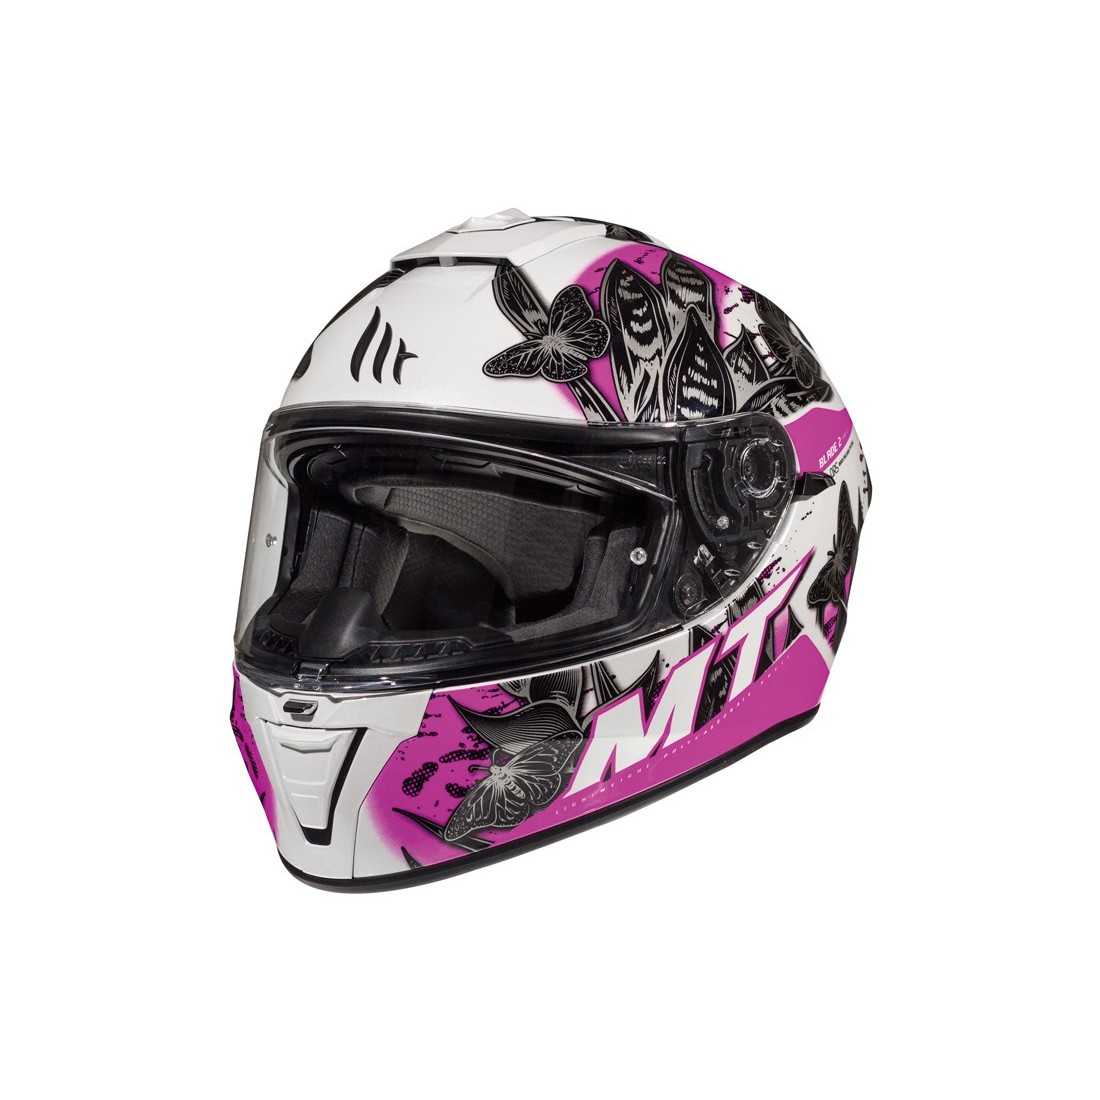 Casco MT FF107SV BLADE 2 SV BREEZE D8 Rosa Perla Brillo TALLA CASCO XS